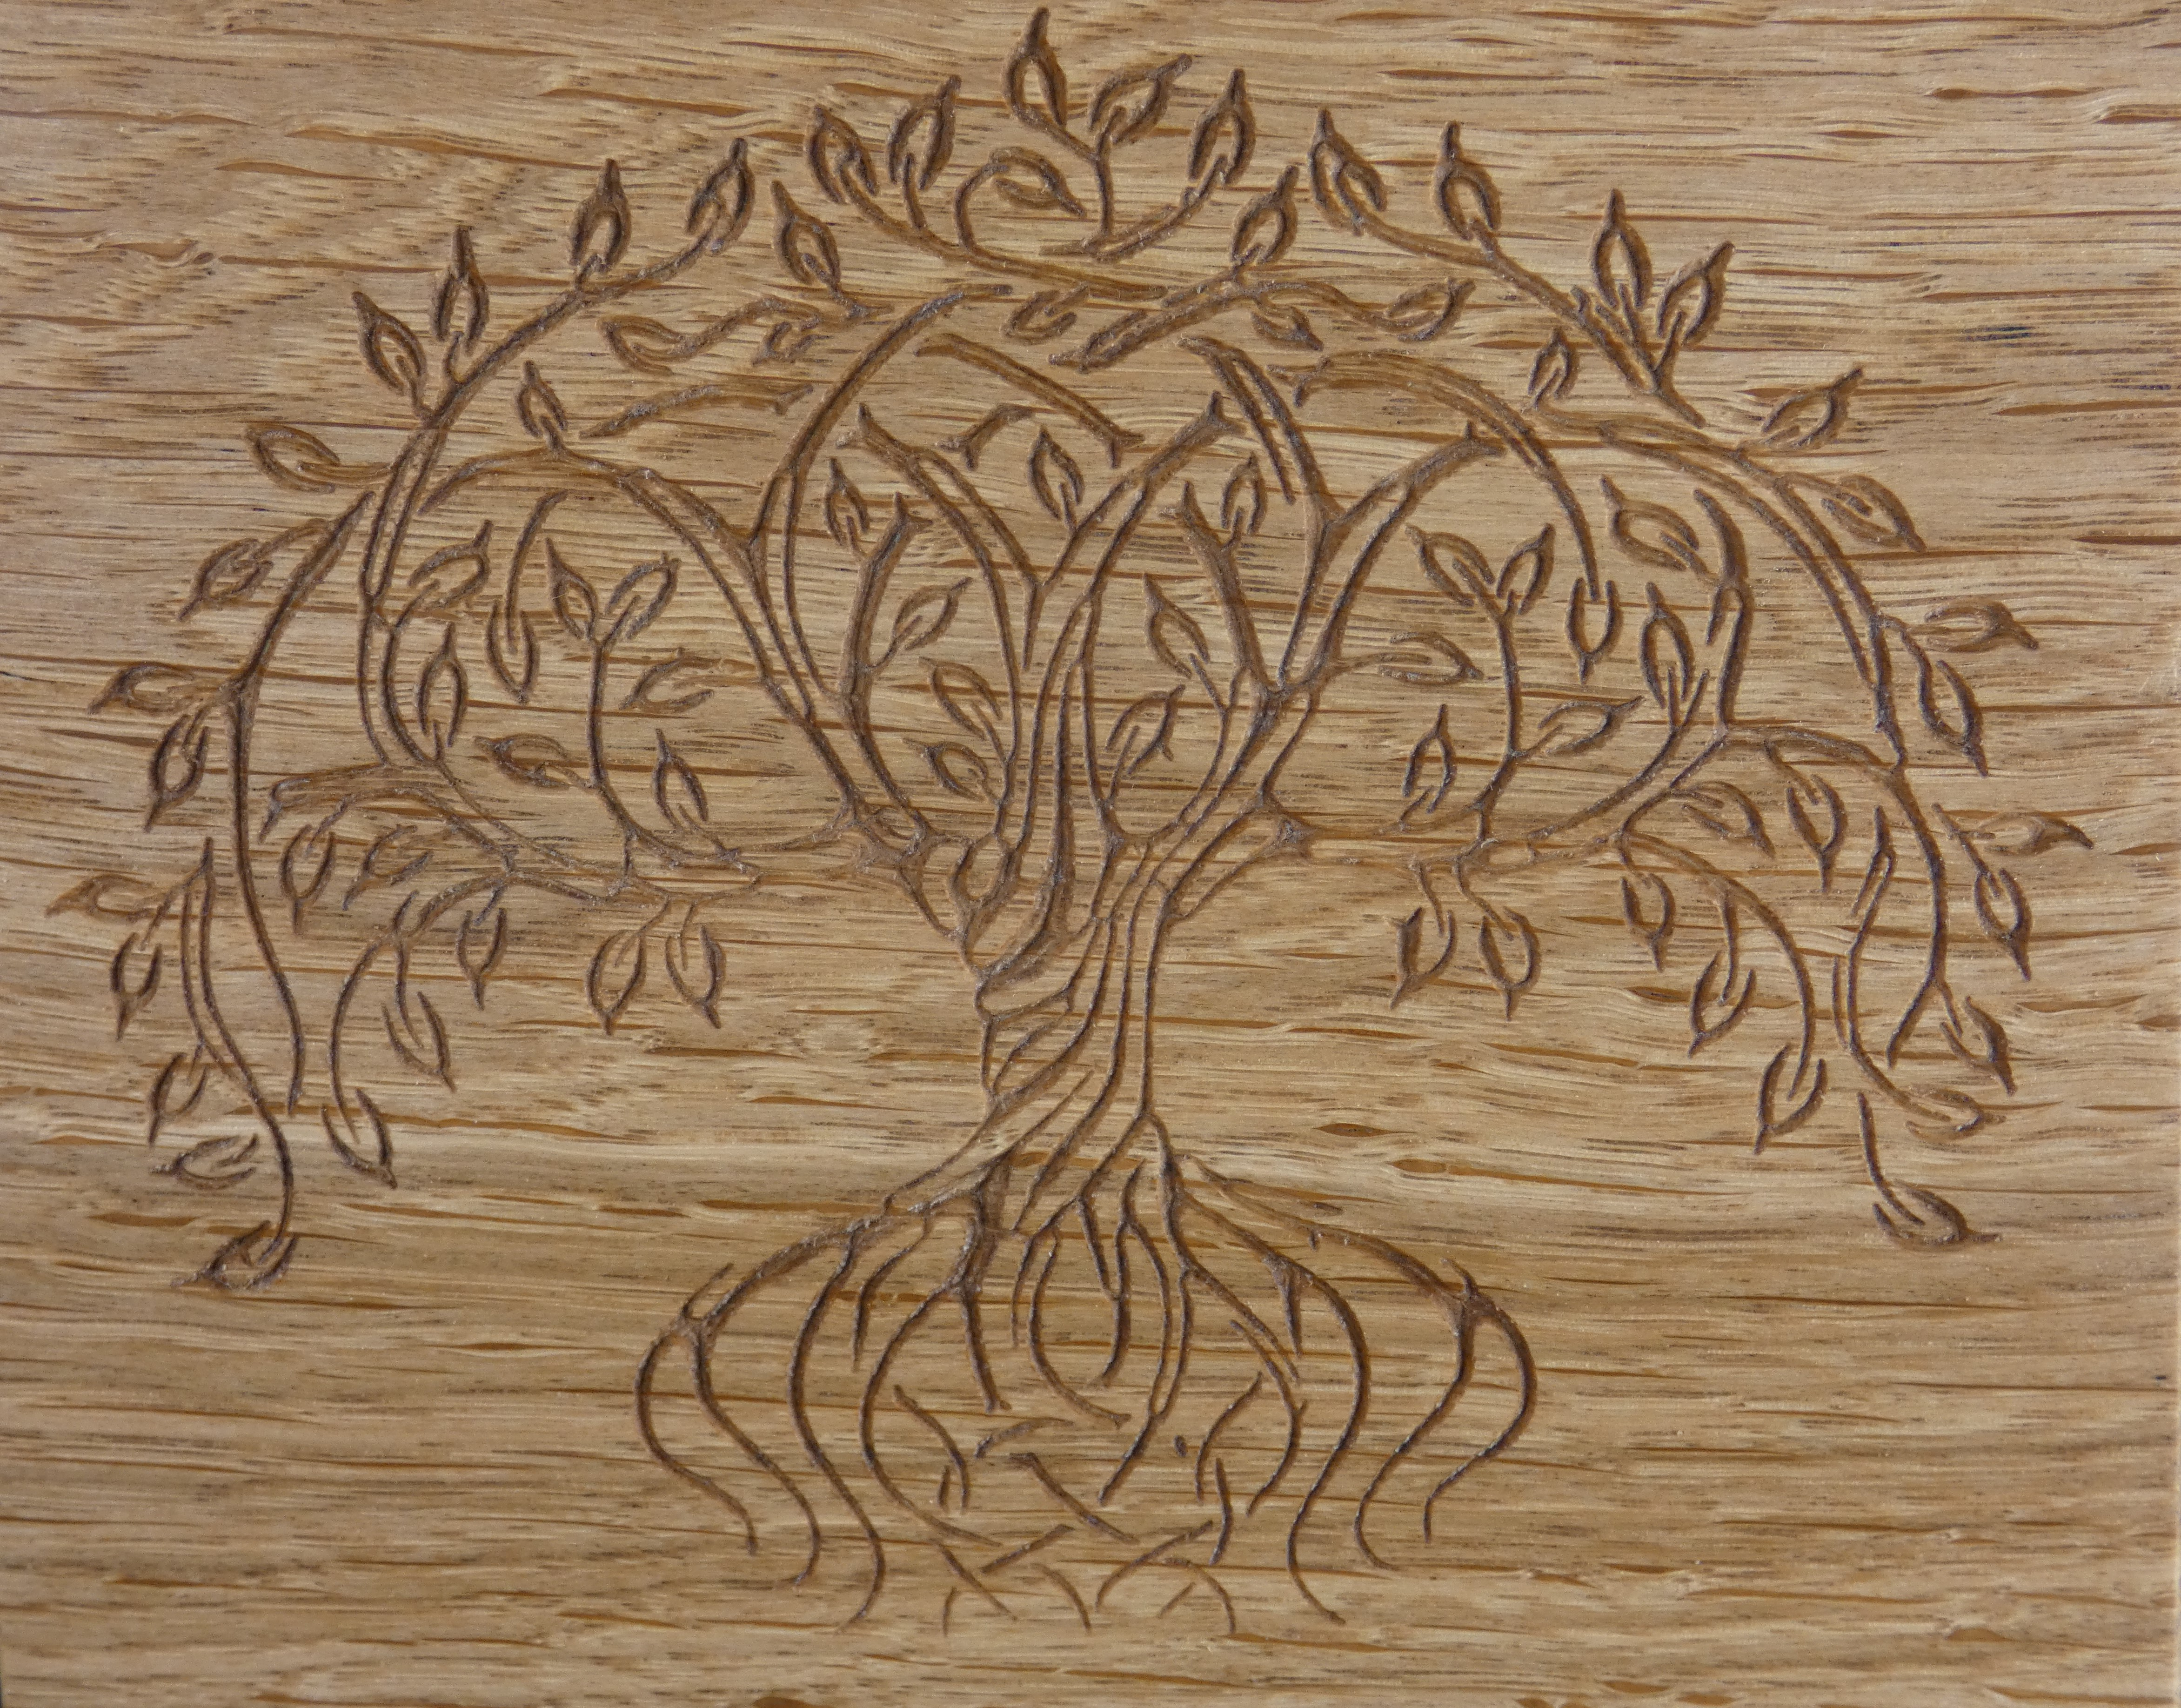 Tree Of Life Wall Decor Throughout Fashionable Tree Of Life Wood Wall Art – The Grain Attraction (View 6 of 20)